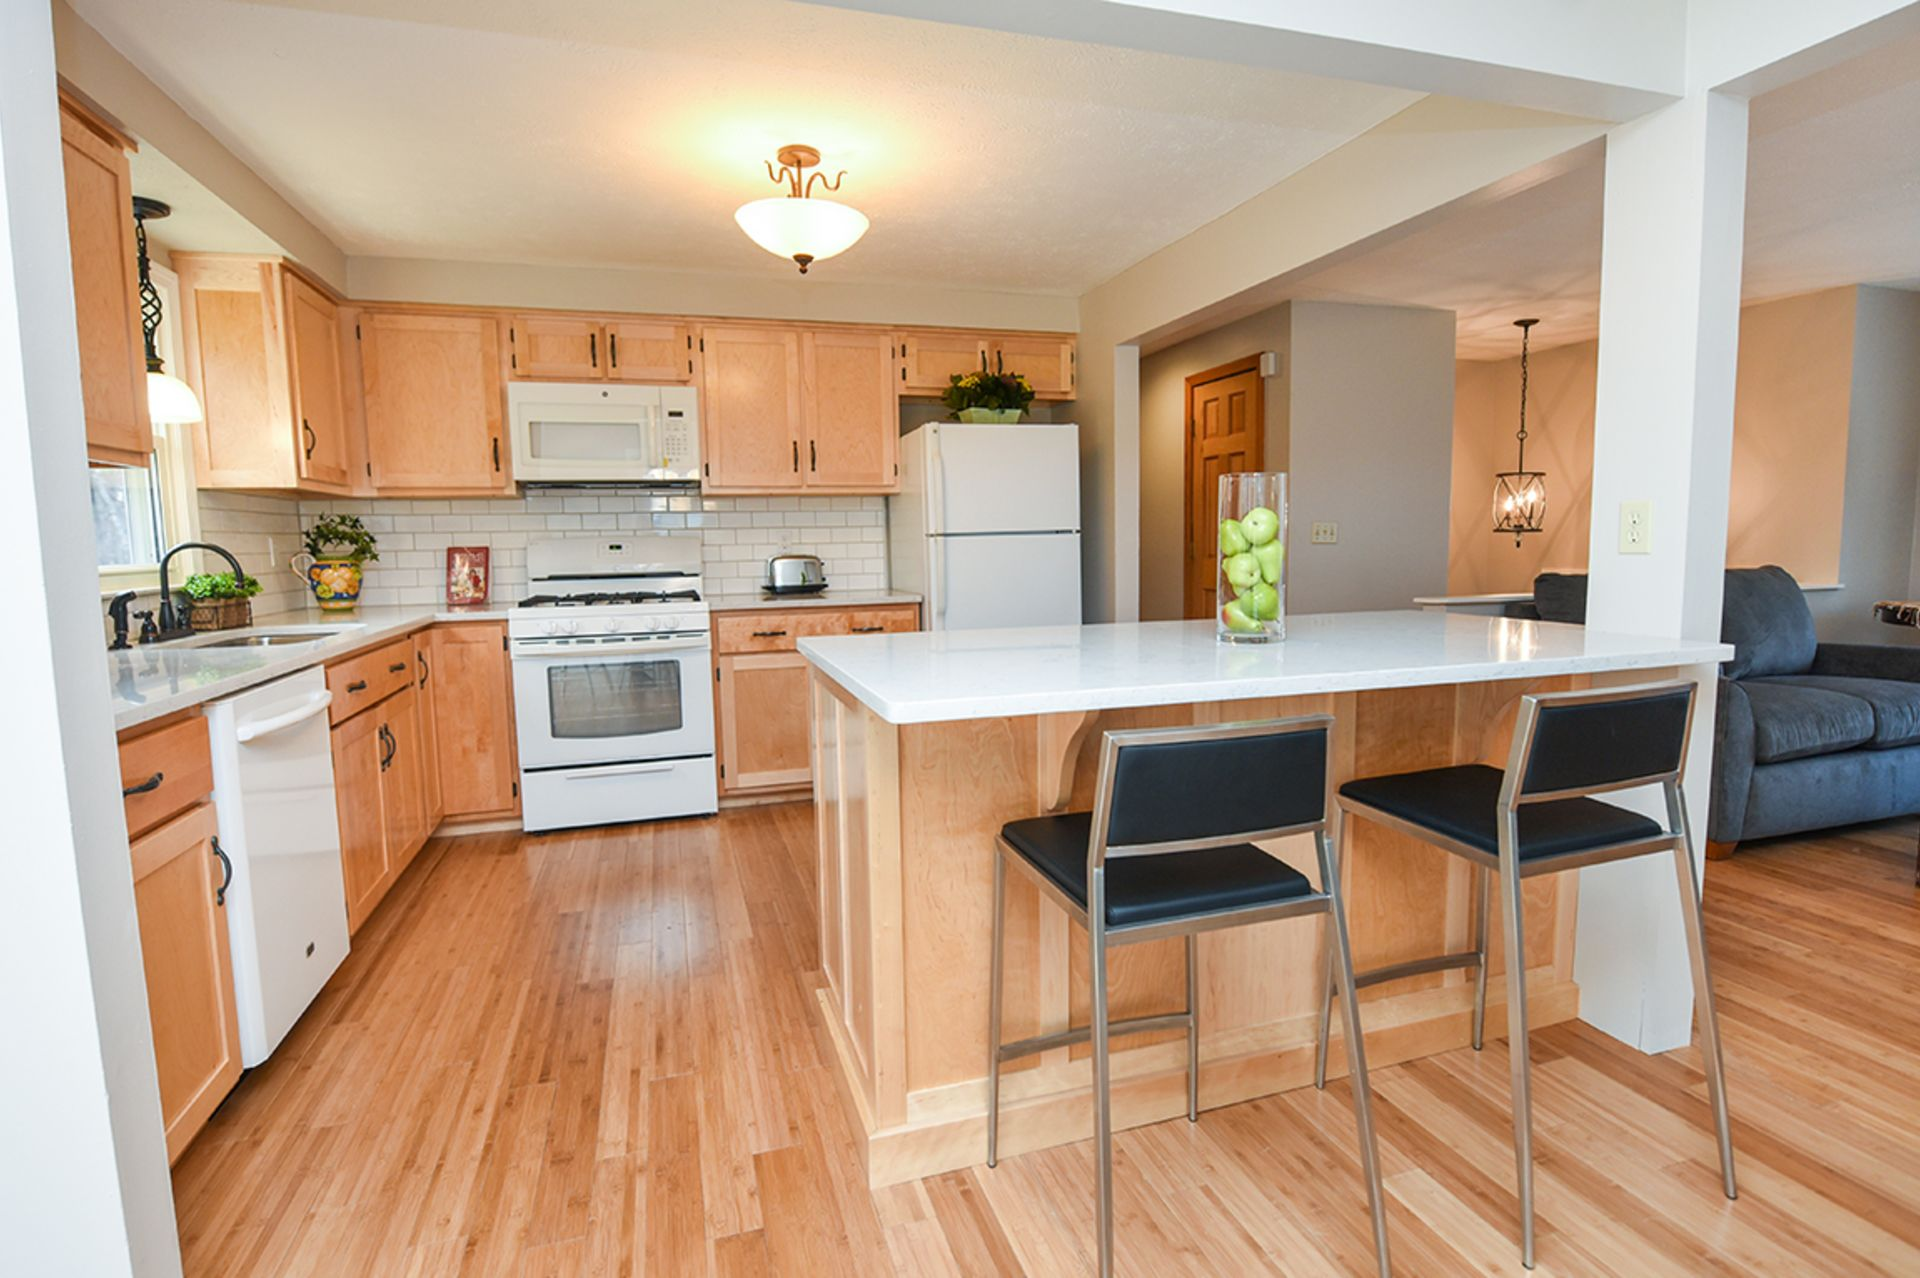 Inviting 4BR Ranch @ 7 Old Manchester Rd in Derry